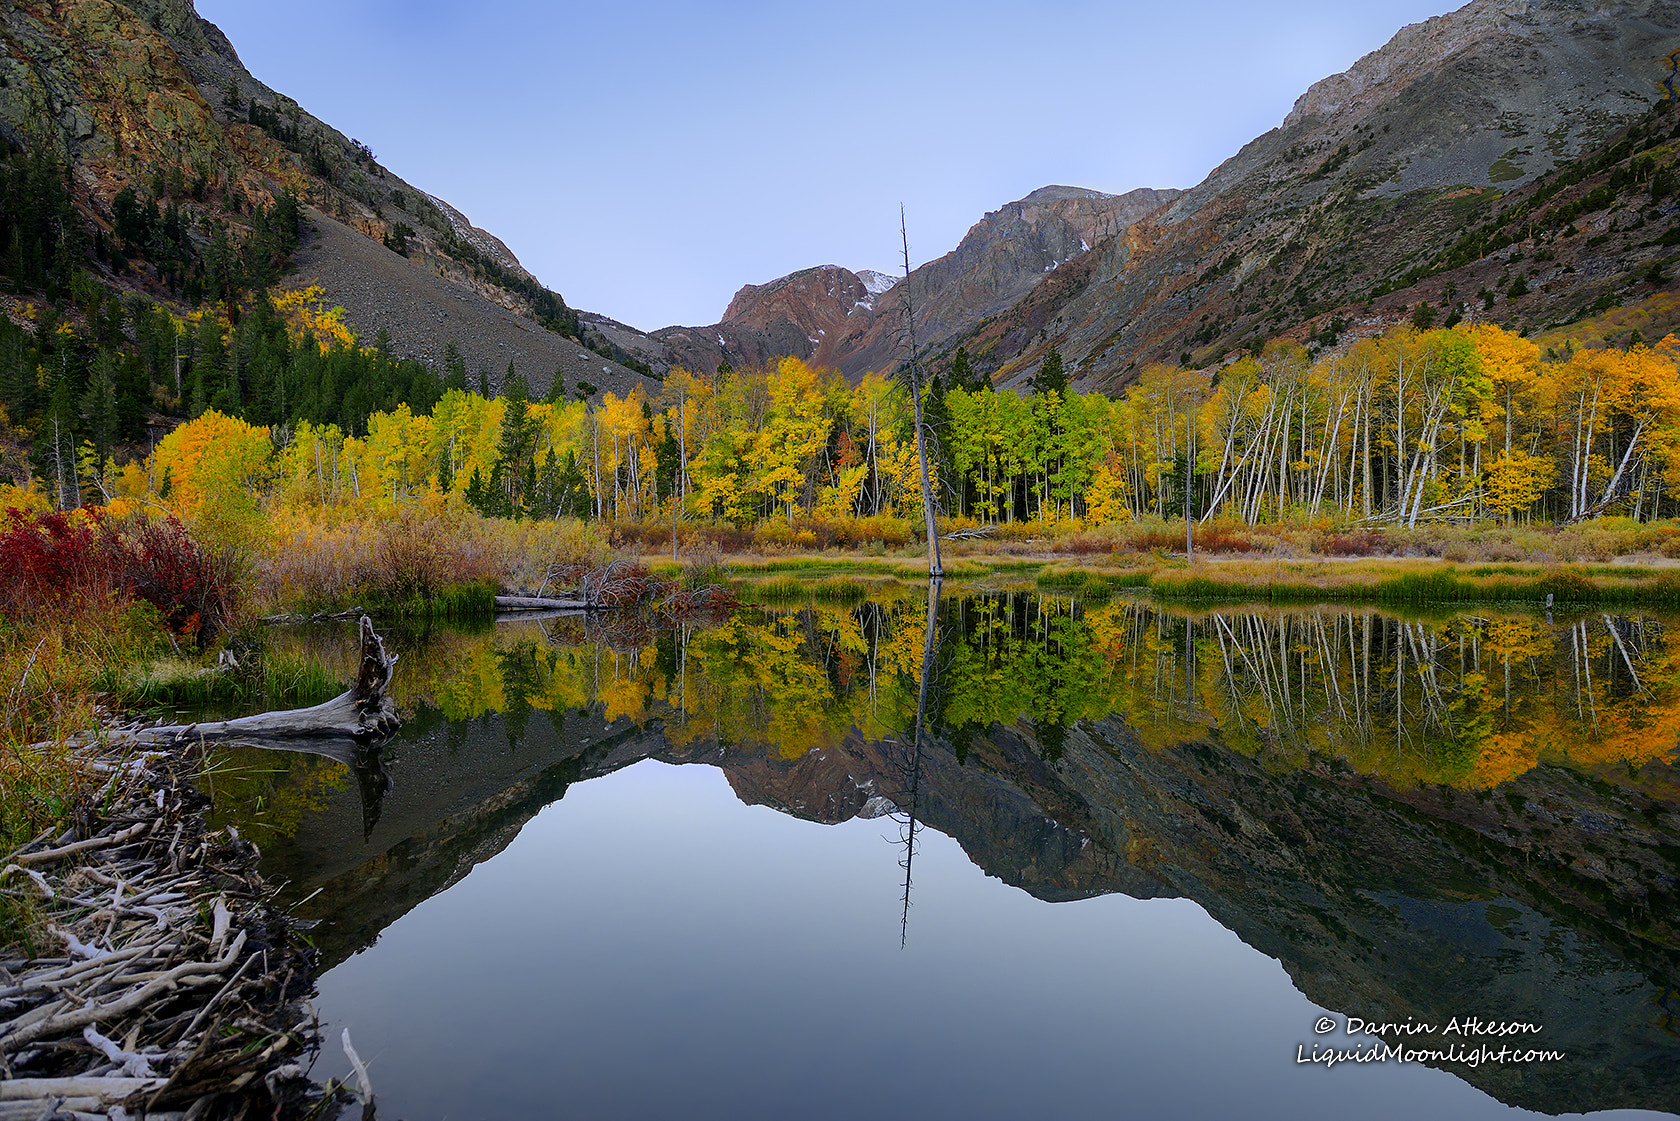 Photograph Mirror of Autumn  by Darvin Atkeson on 500px